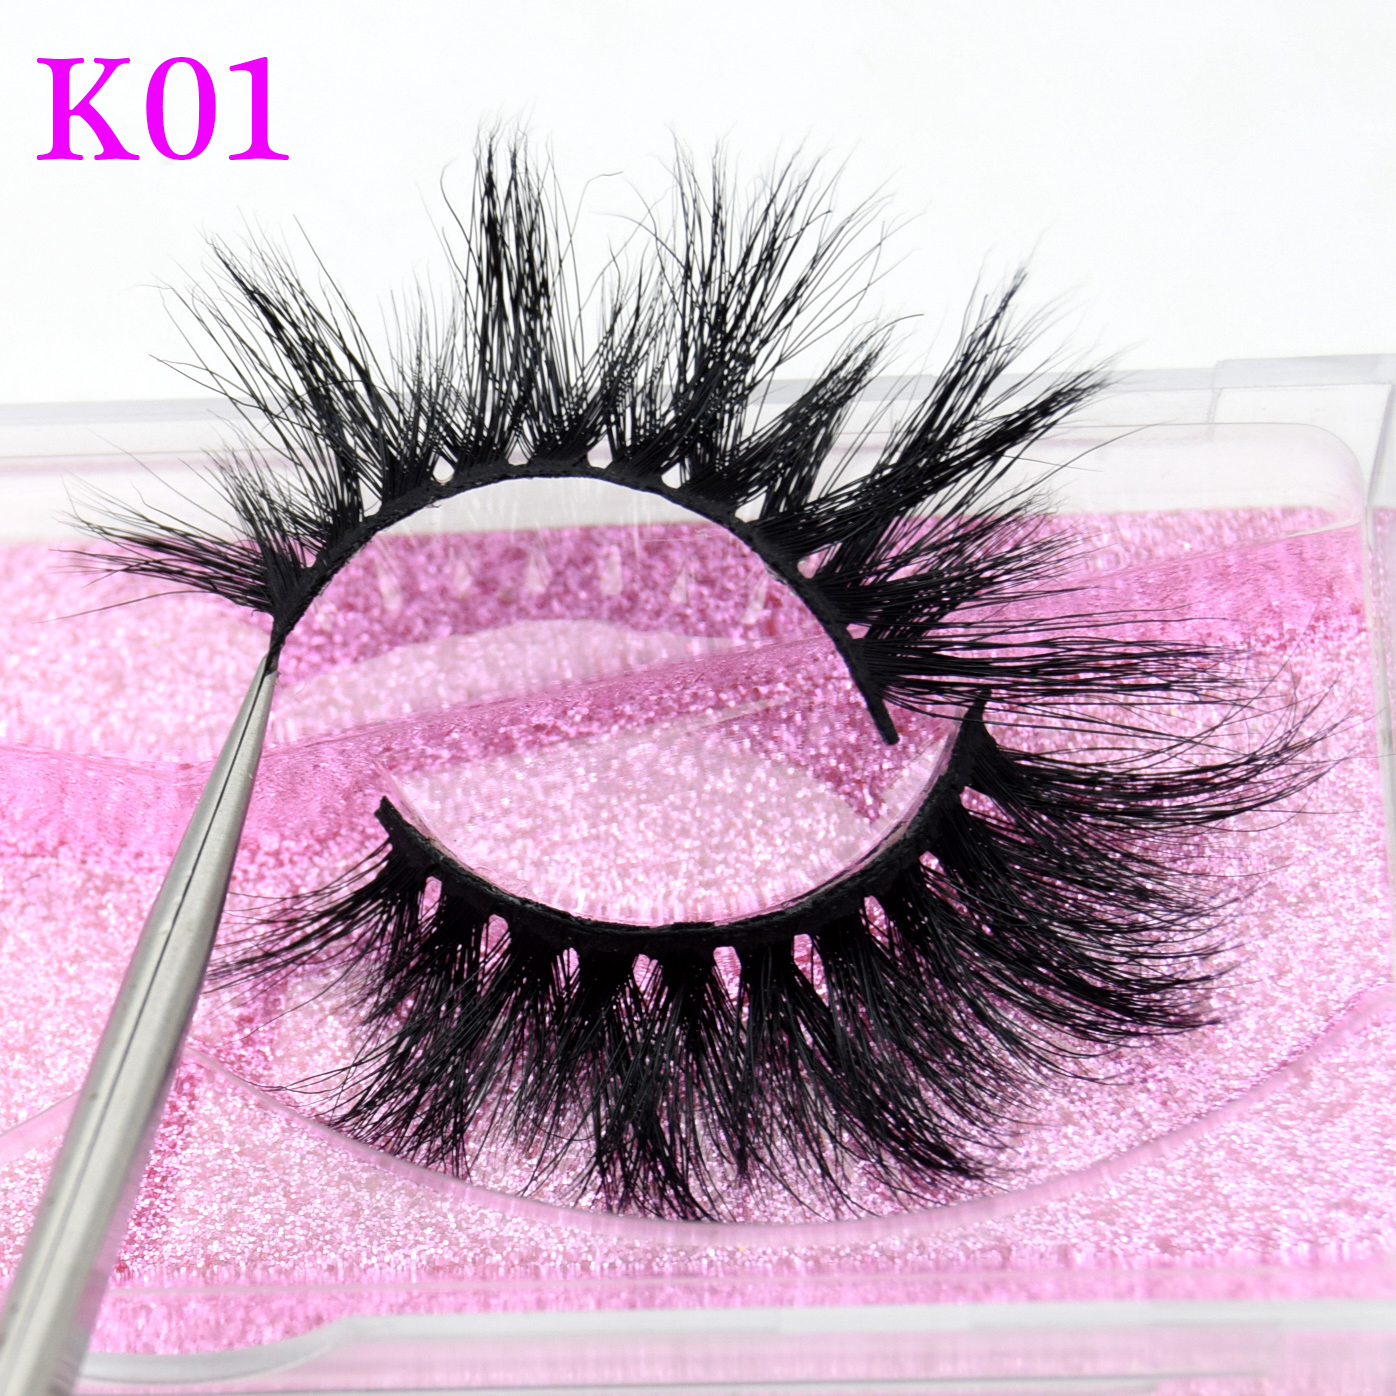 Visofree Mink Eyelashes 3D Mink Lashes Thick HandMade Full Strip Lashes Cruelty Free Mink Lashes Long False Eyelashes Makeup K01